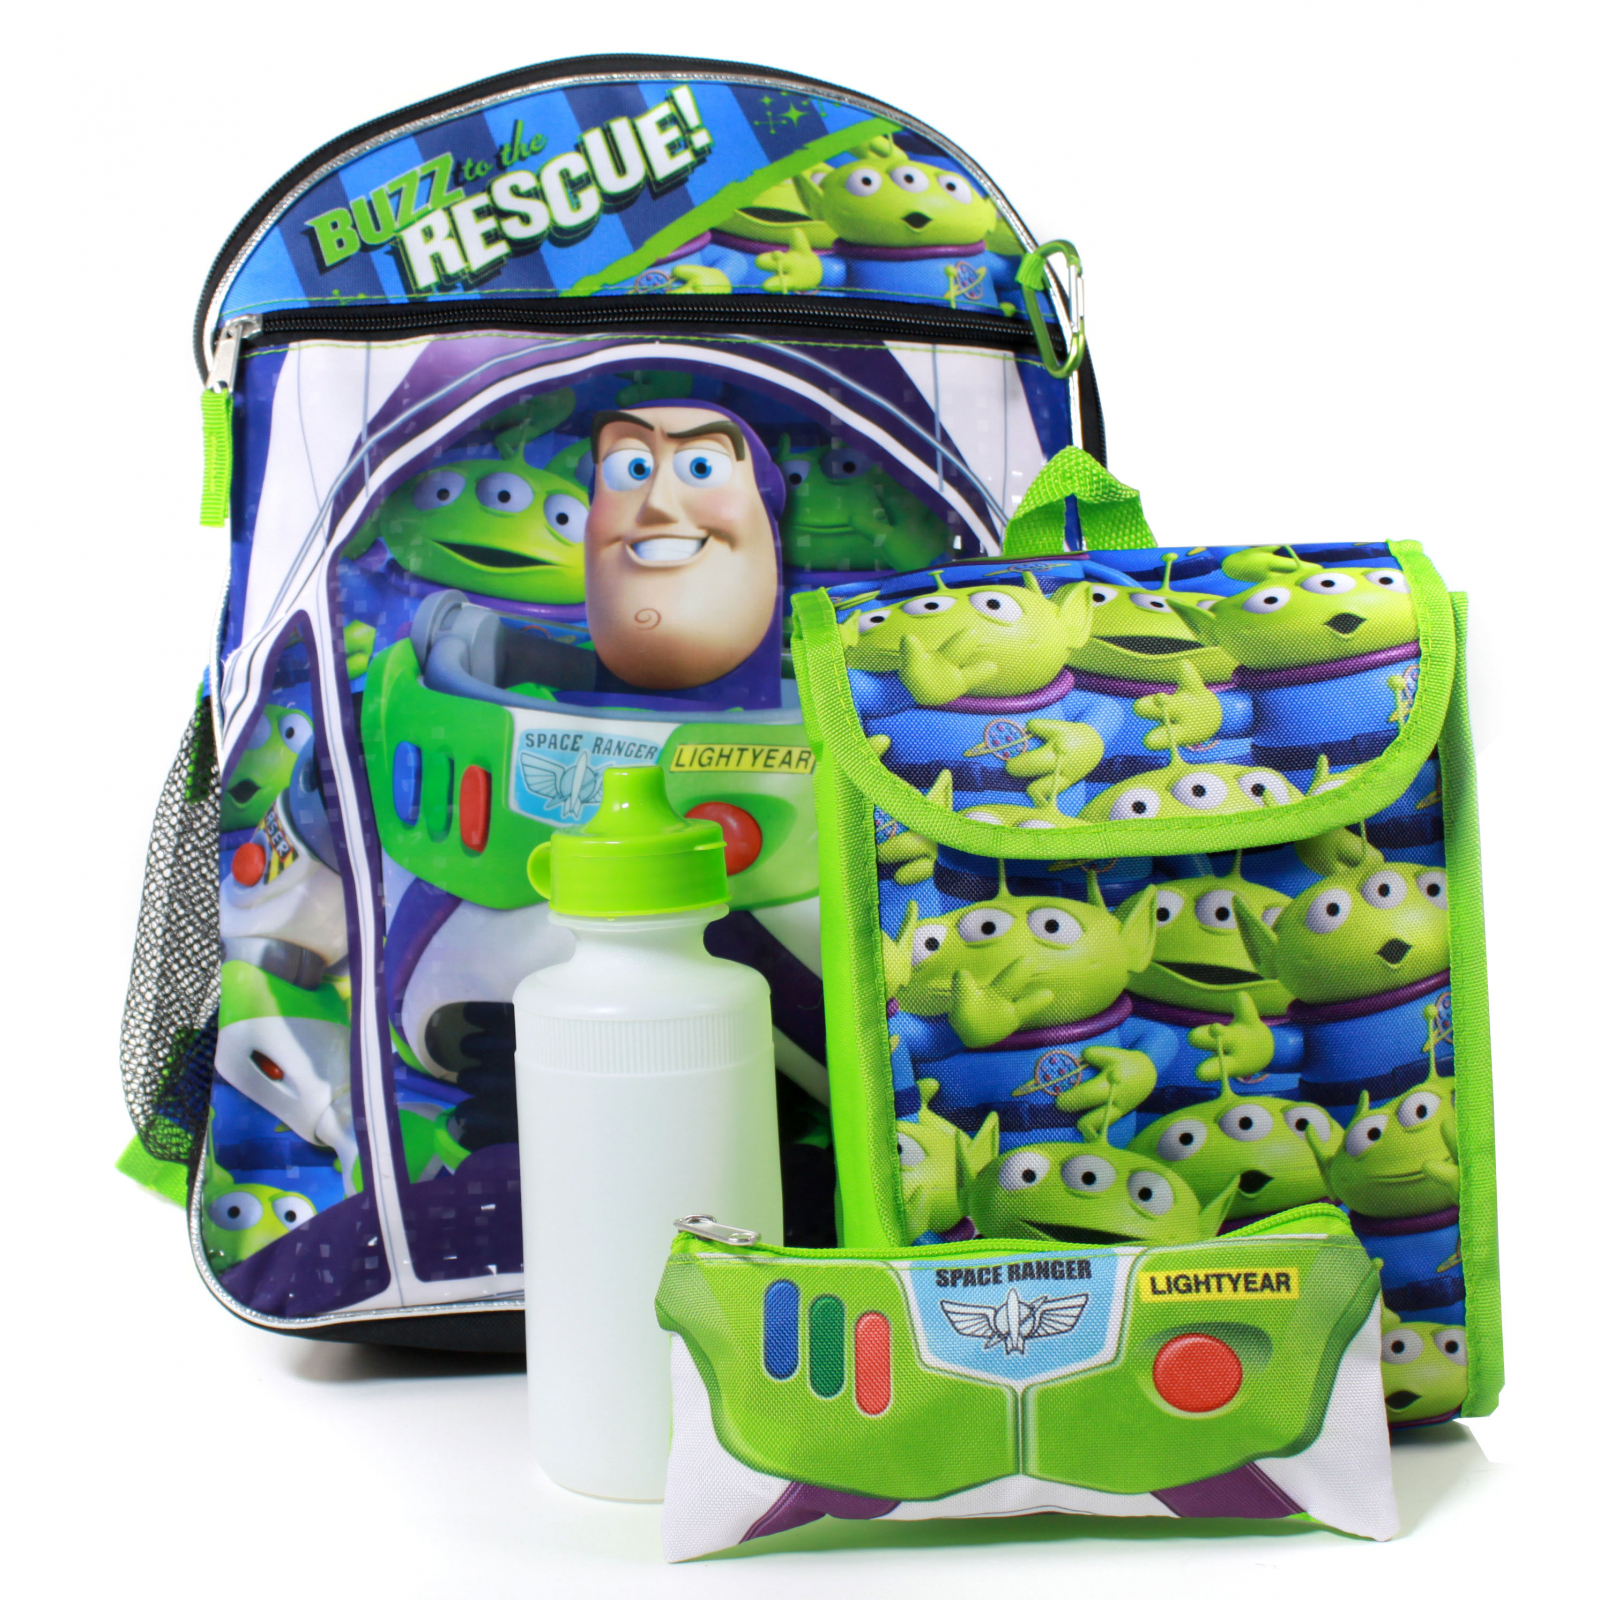 Toy Story Buzz Lightyear Backpack Lunch Box 5 Piece Set